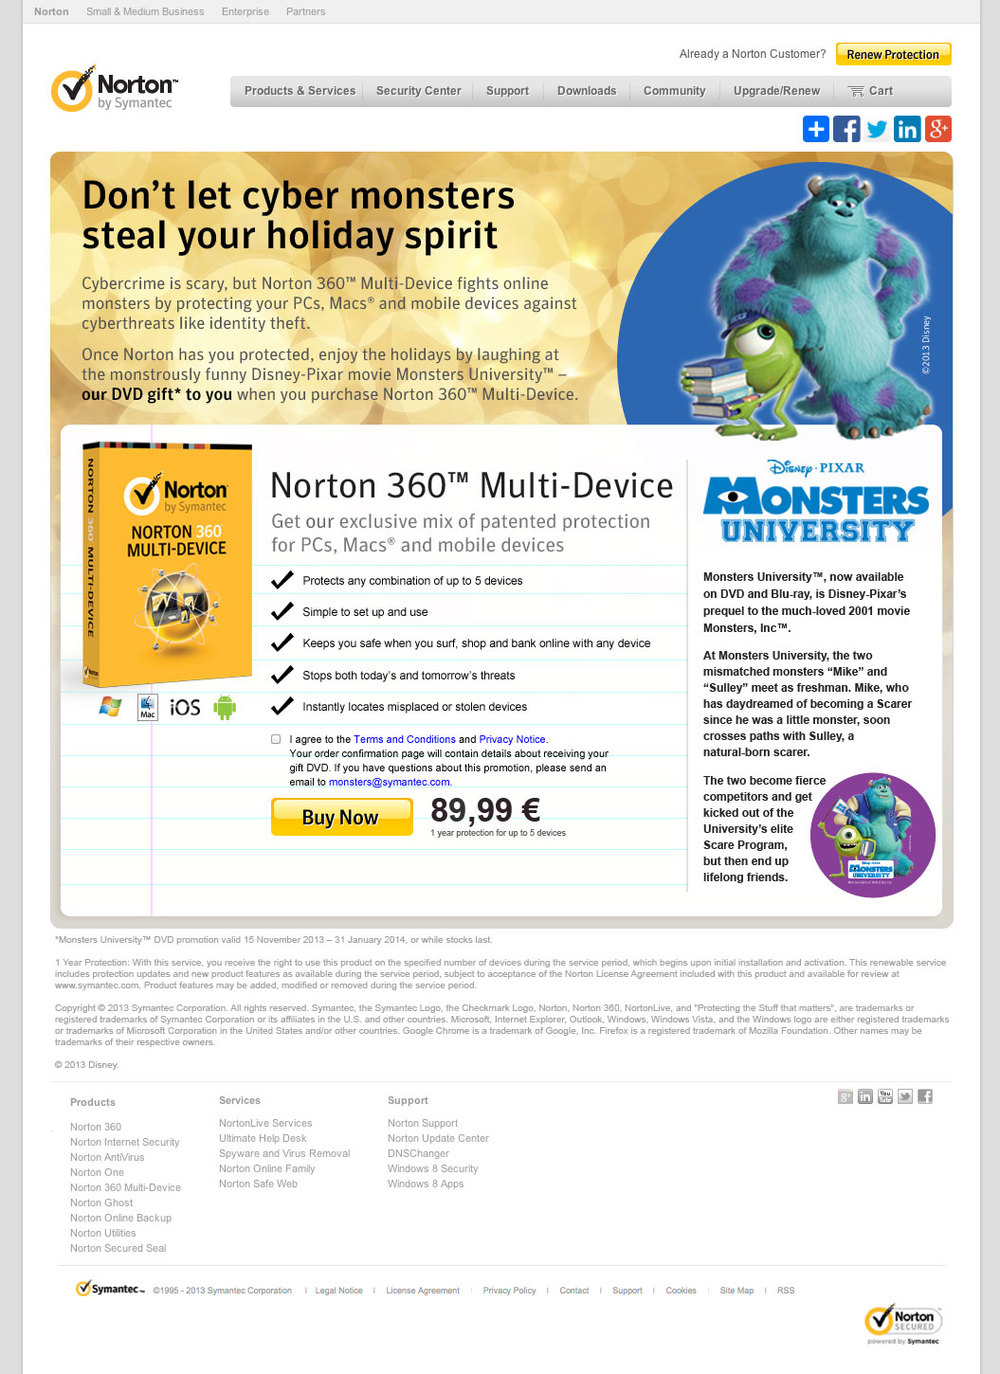 Monsters University Landing Page